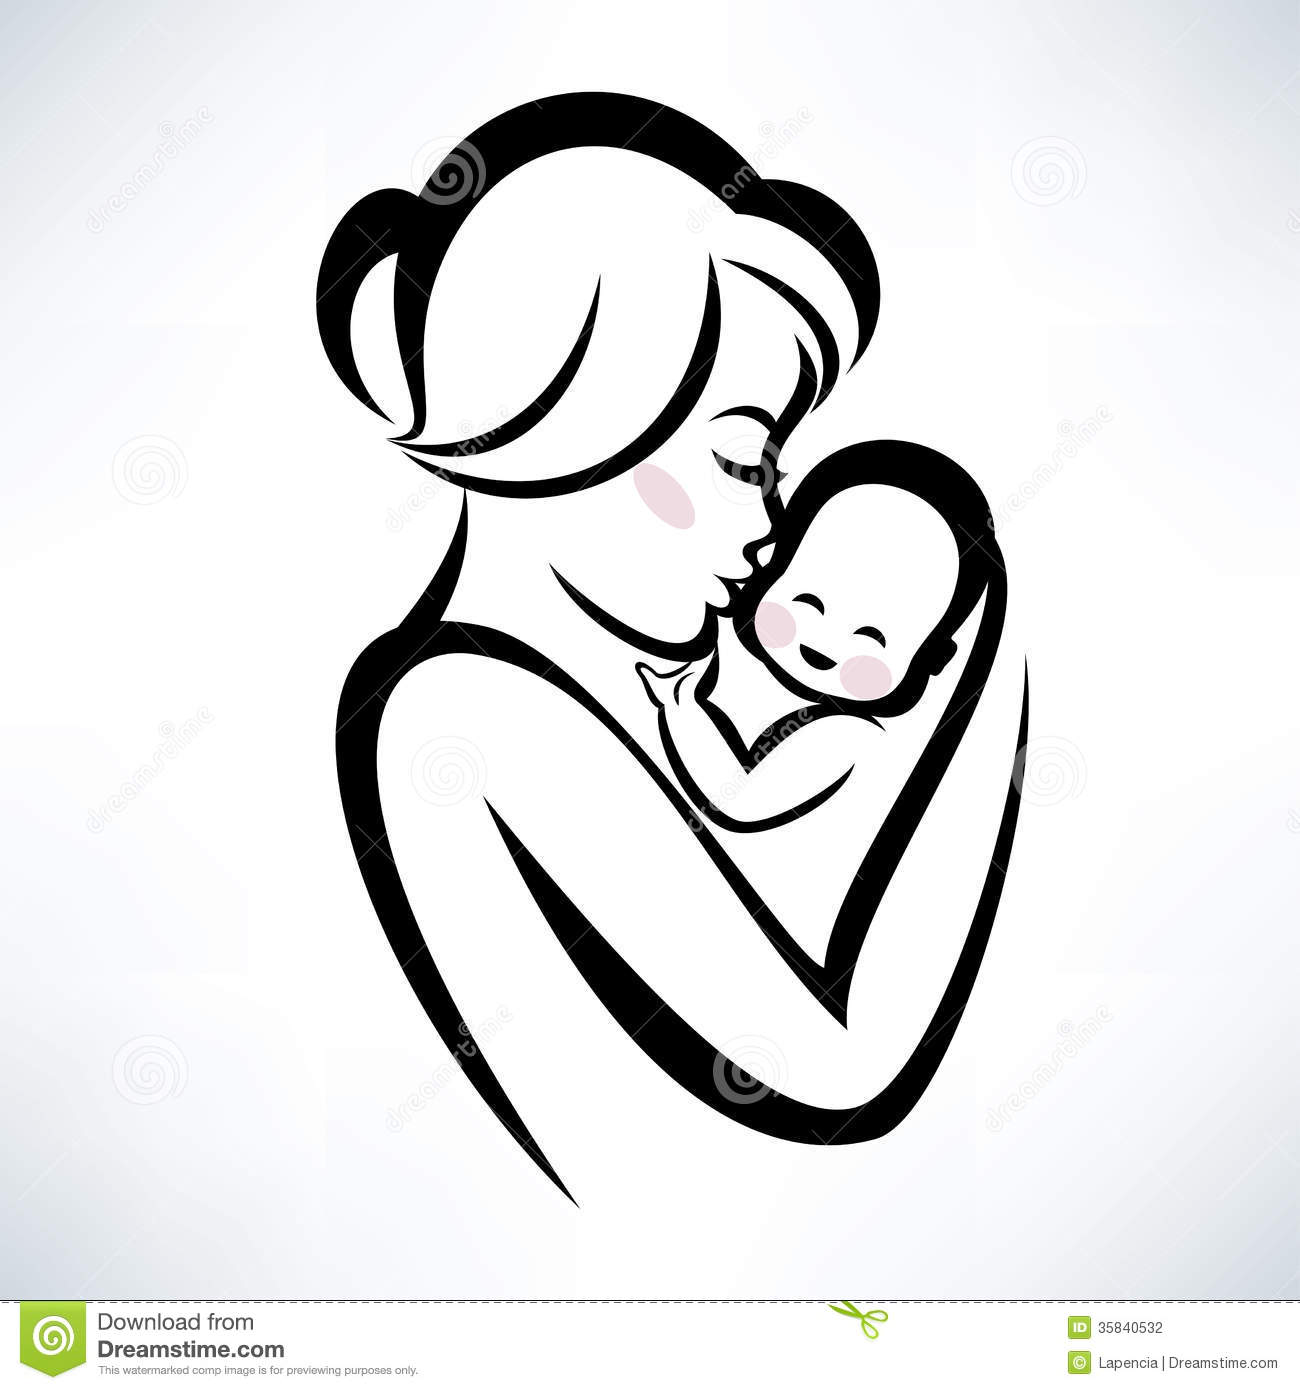 Mom And Baby Symbol Stock Vector Illustration Of Portrait 35453981